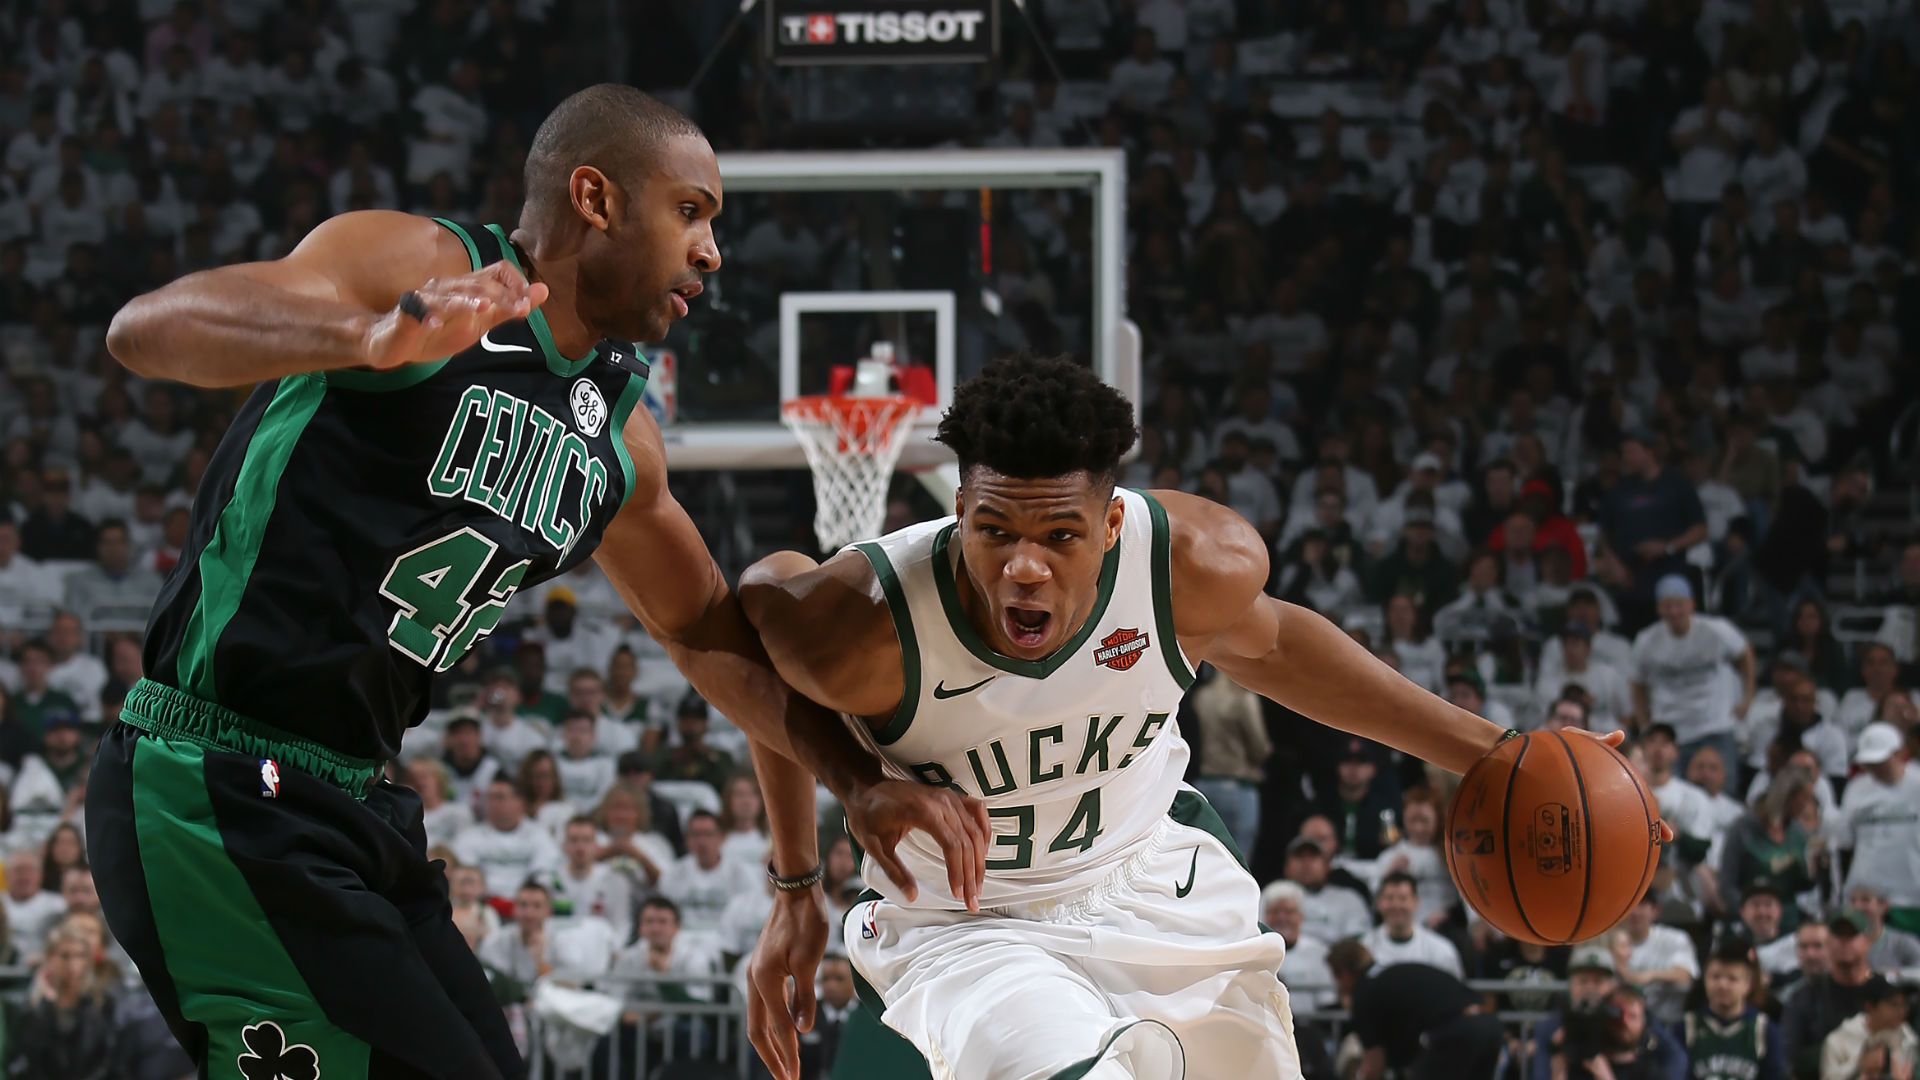 Nba Playoffs 2019 Takeaways From Boston Celtics